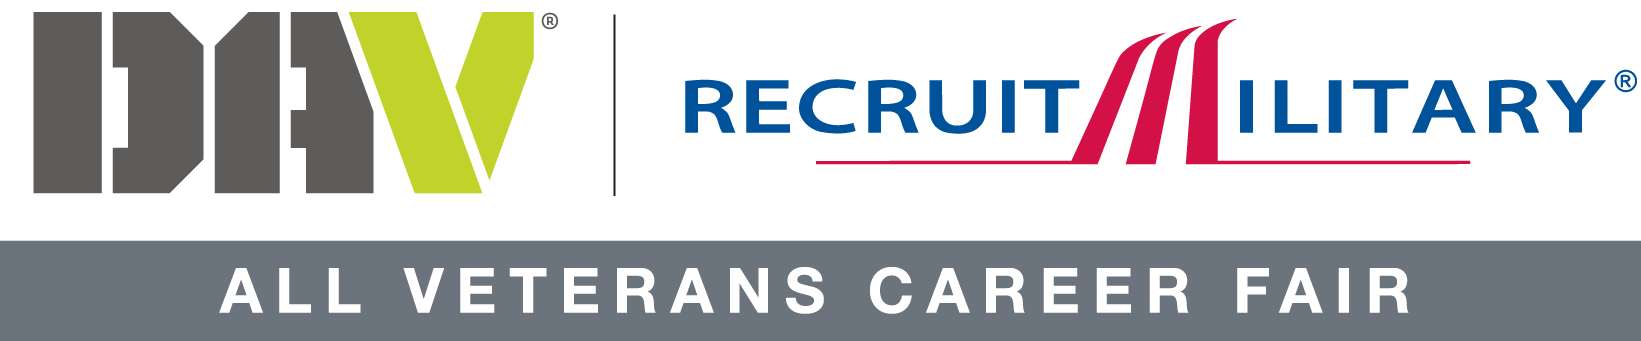 RecruitMilitary Logo